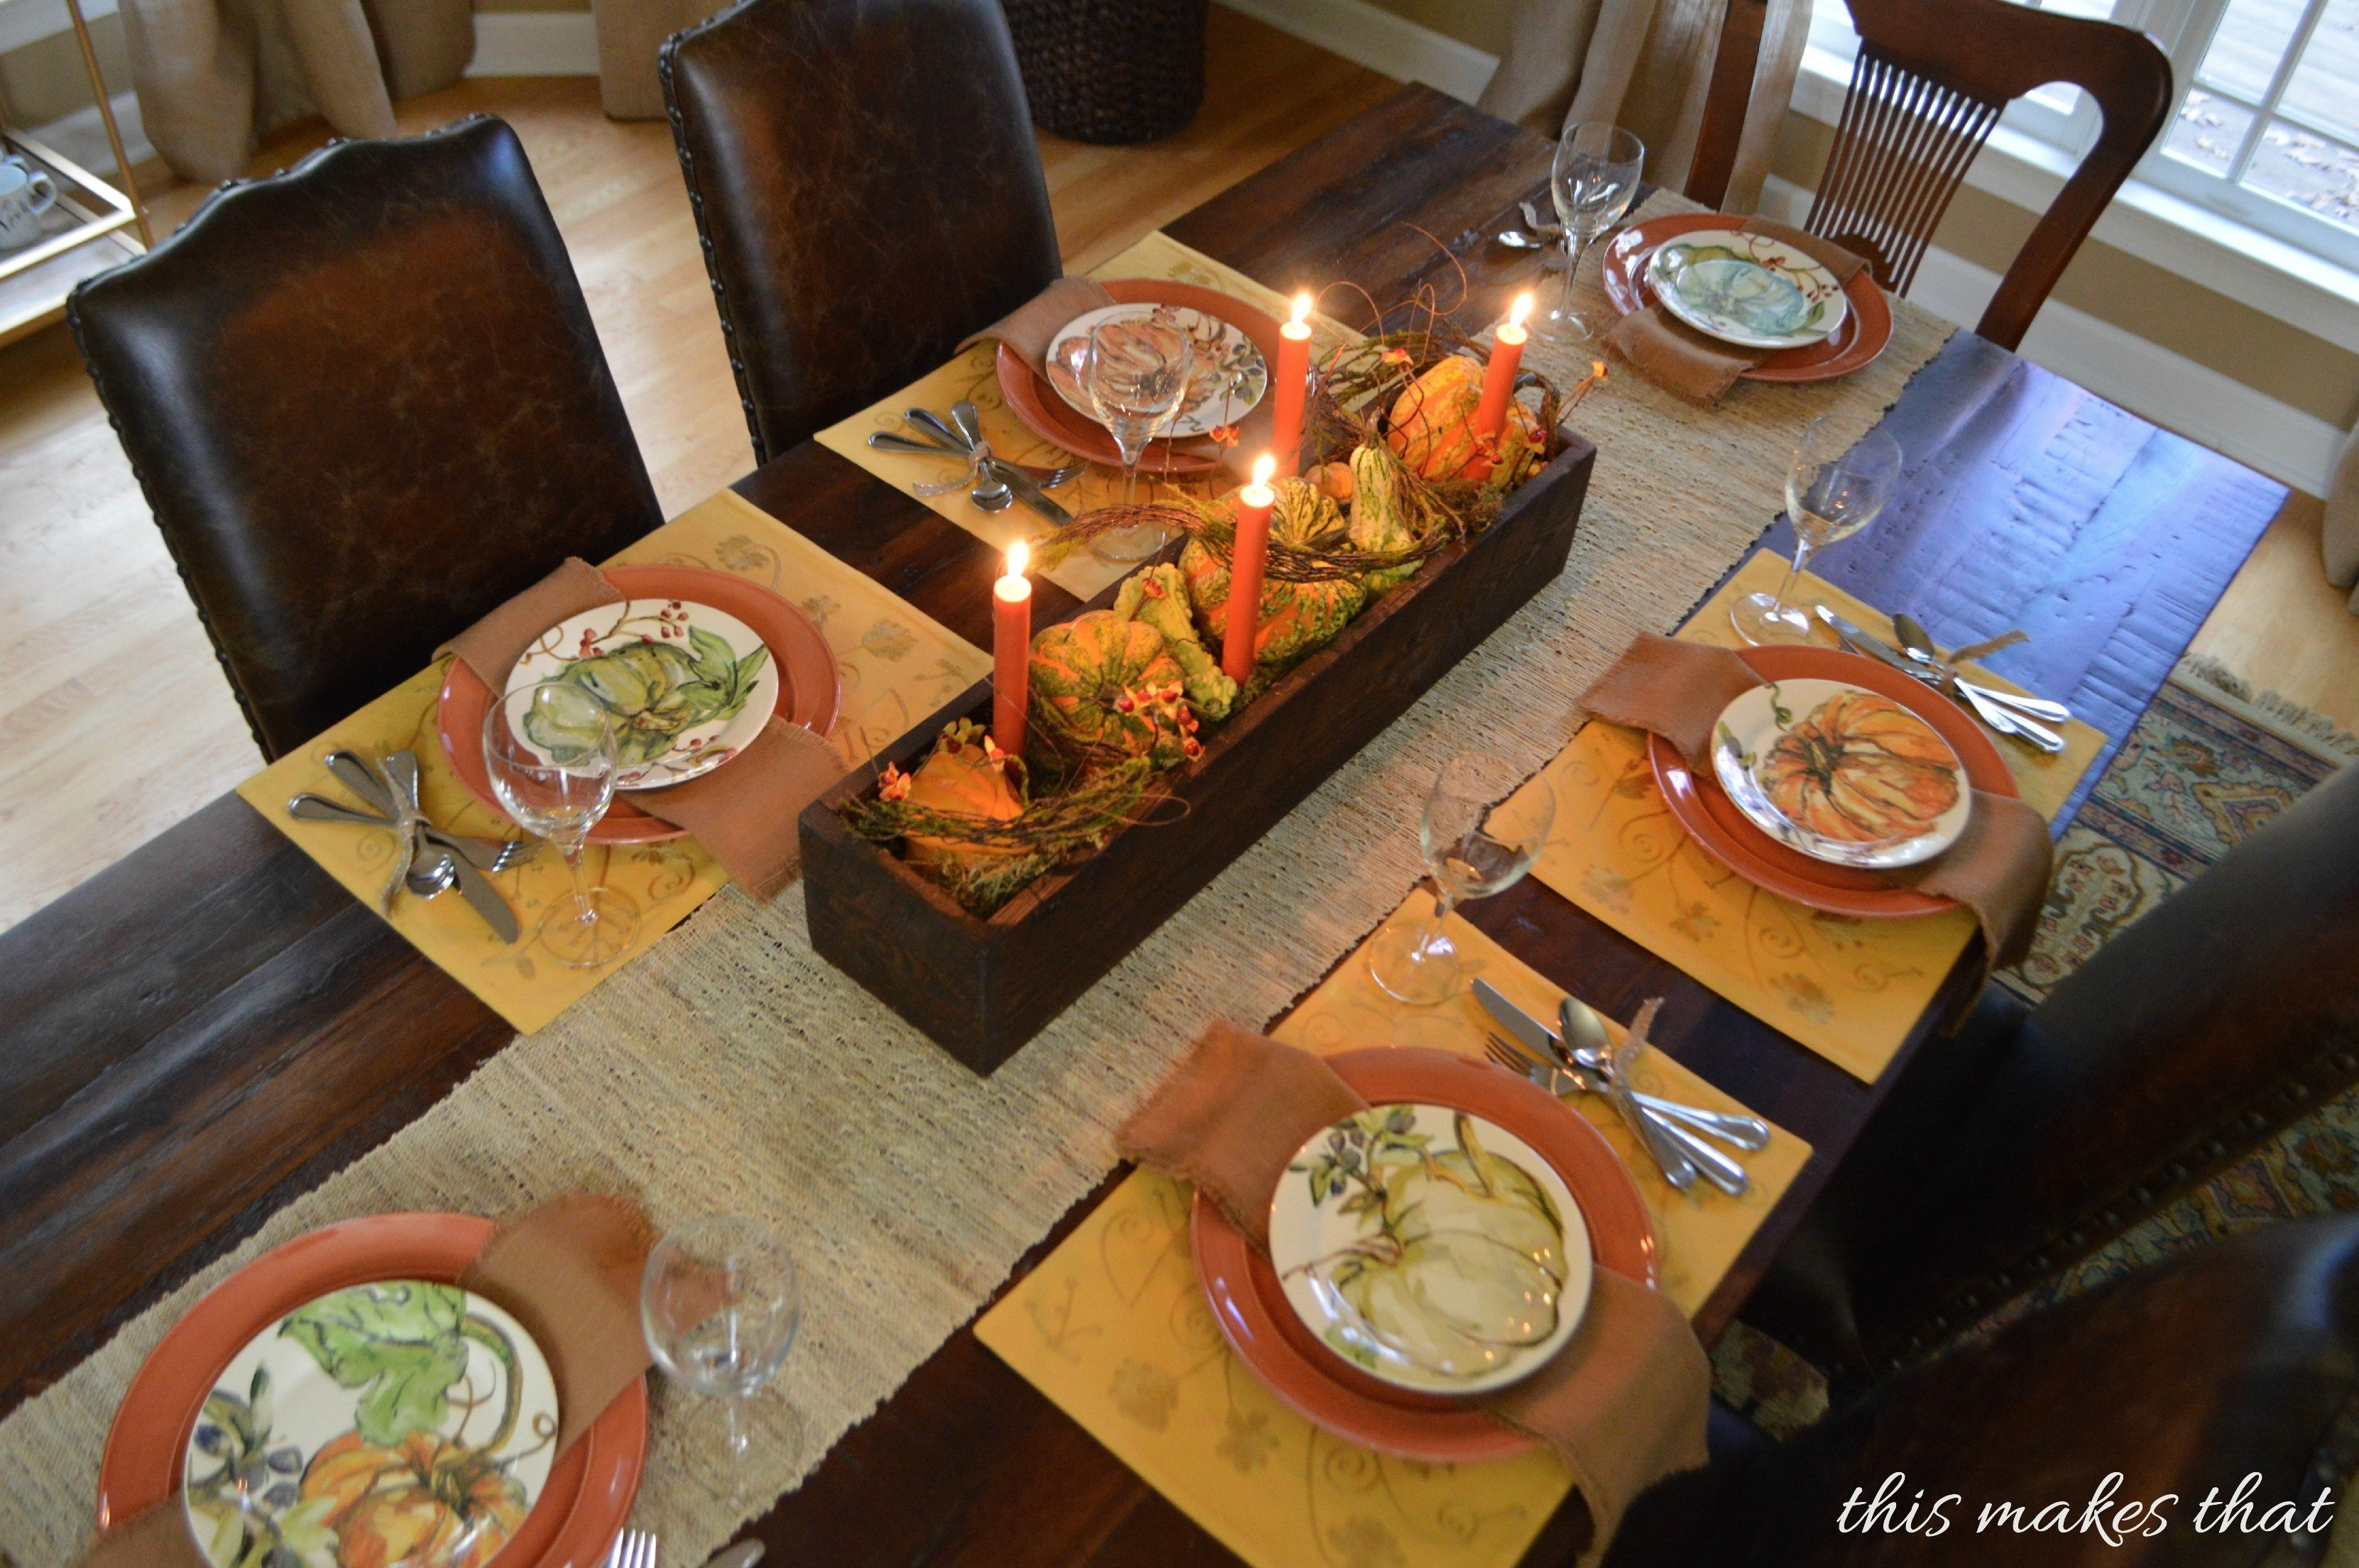 10 Wonderful Thanksgiving Table Setting Ideas Easy thanksgiving table setting ideas this makes that passover seder cool 1